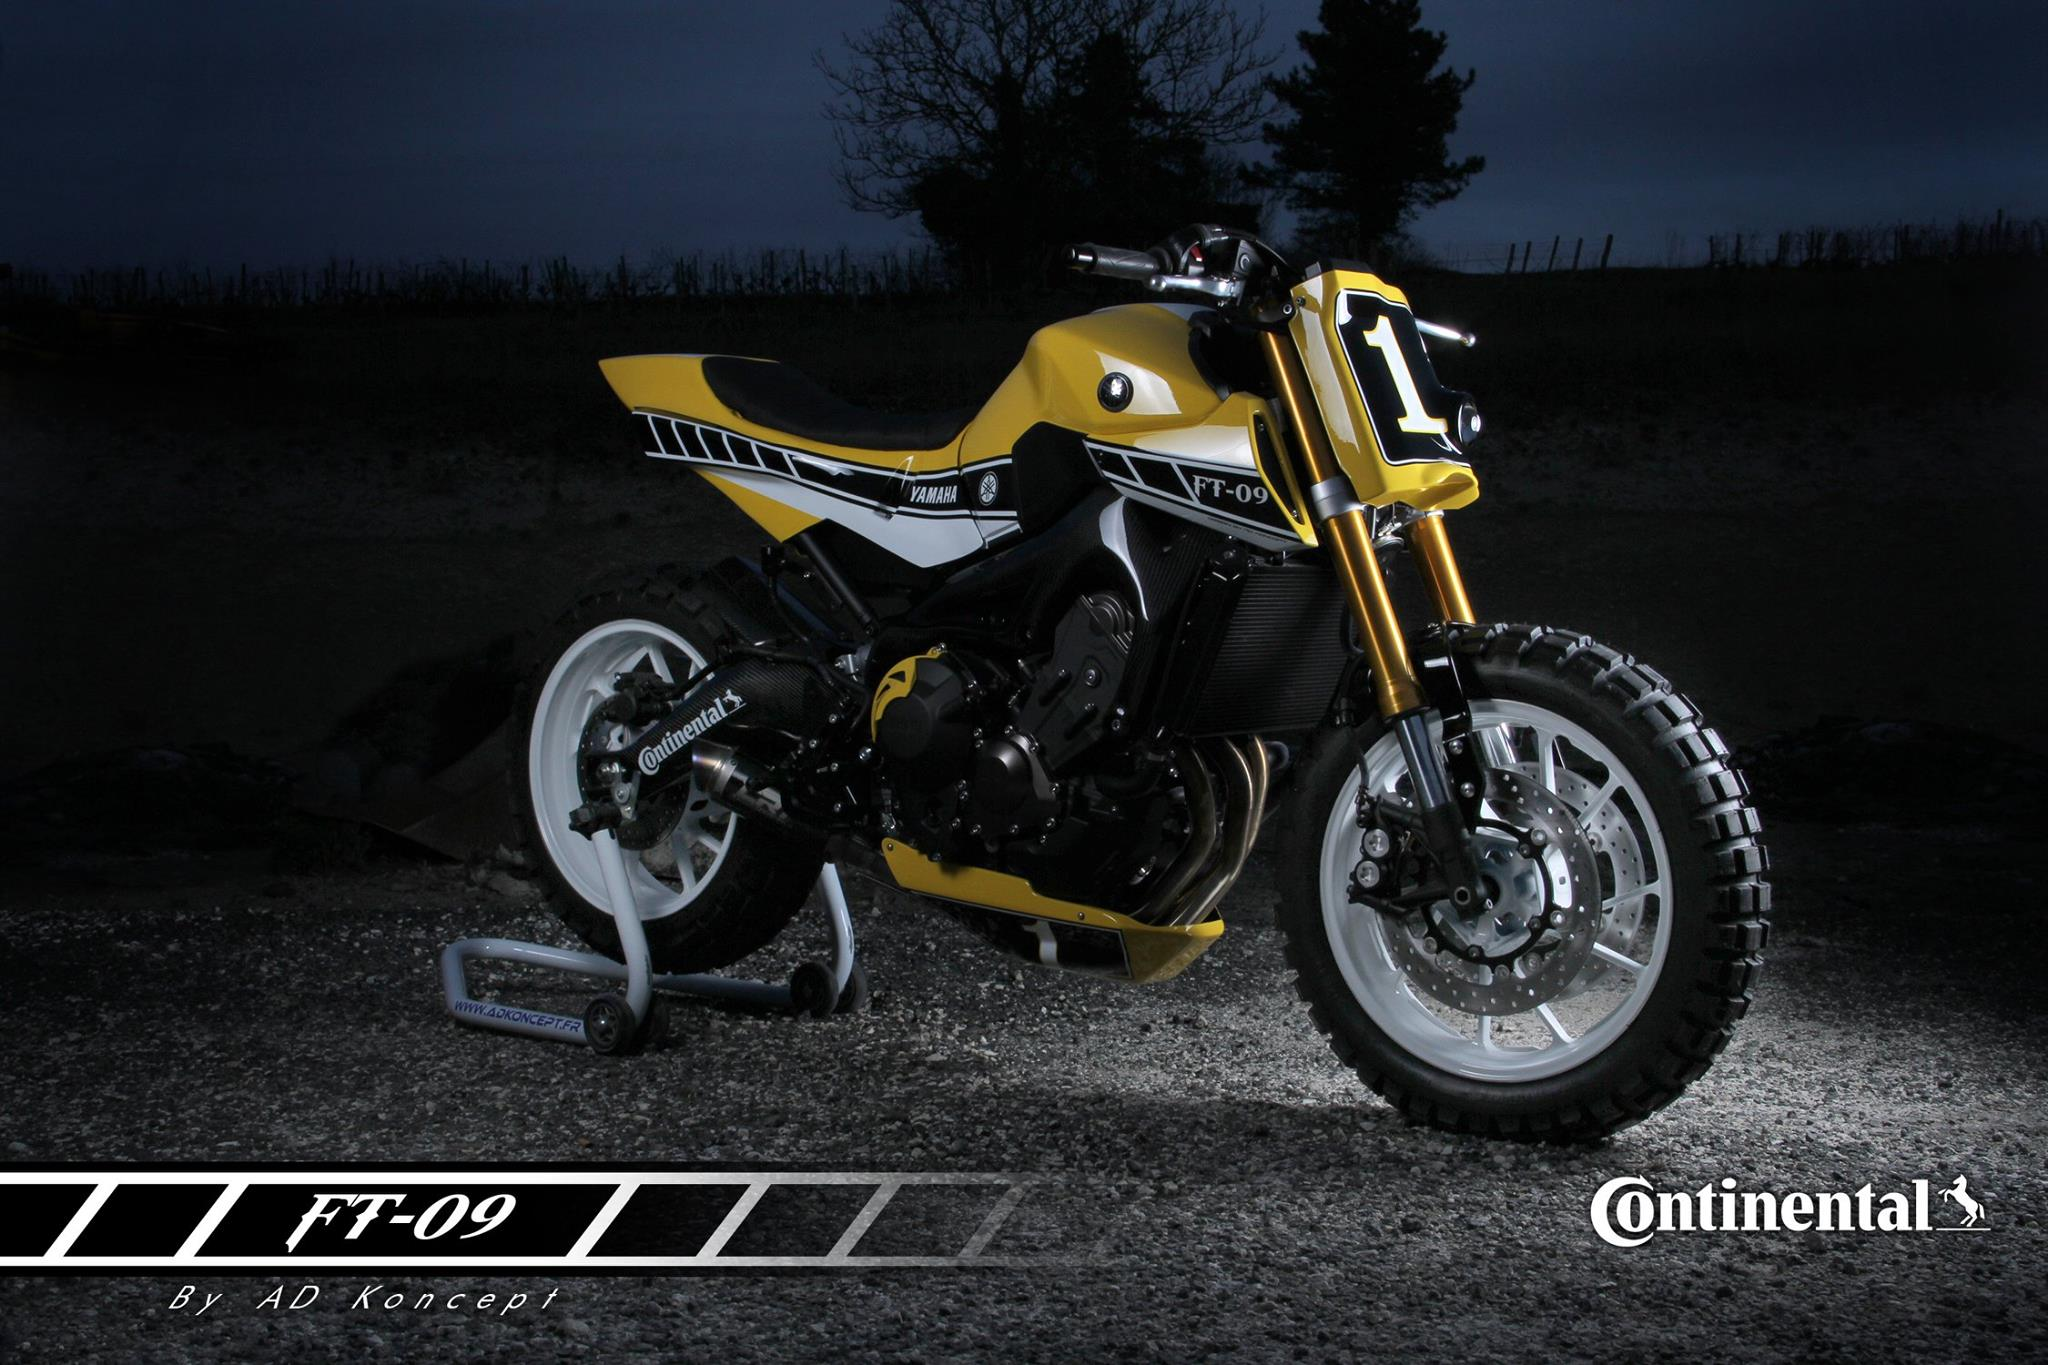 Yamaha Ft 09 Looks Like A Flattracker Fit For Daily Use